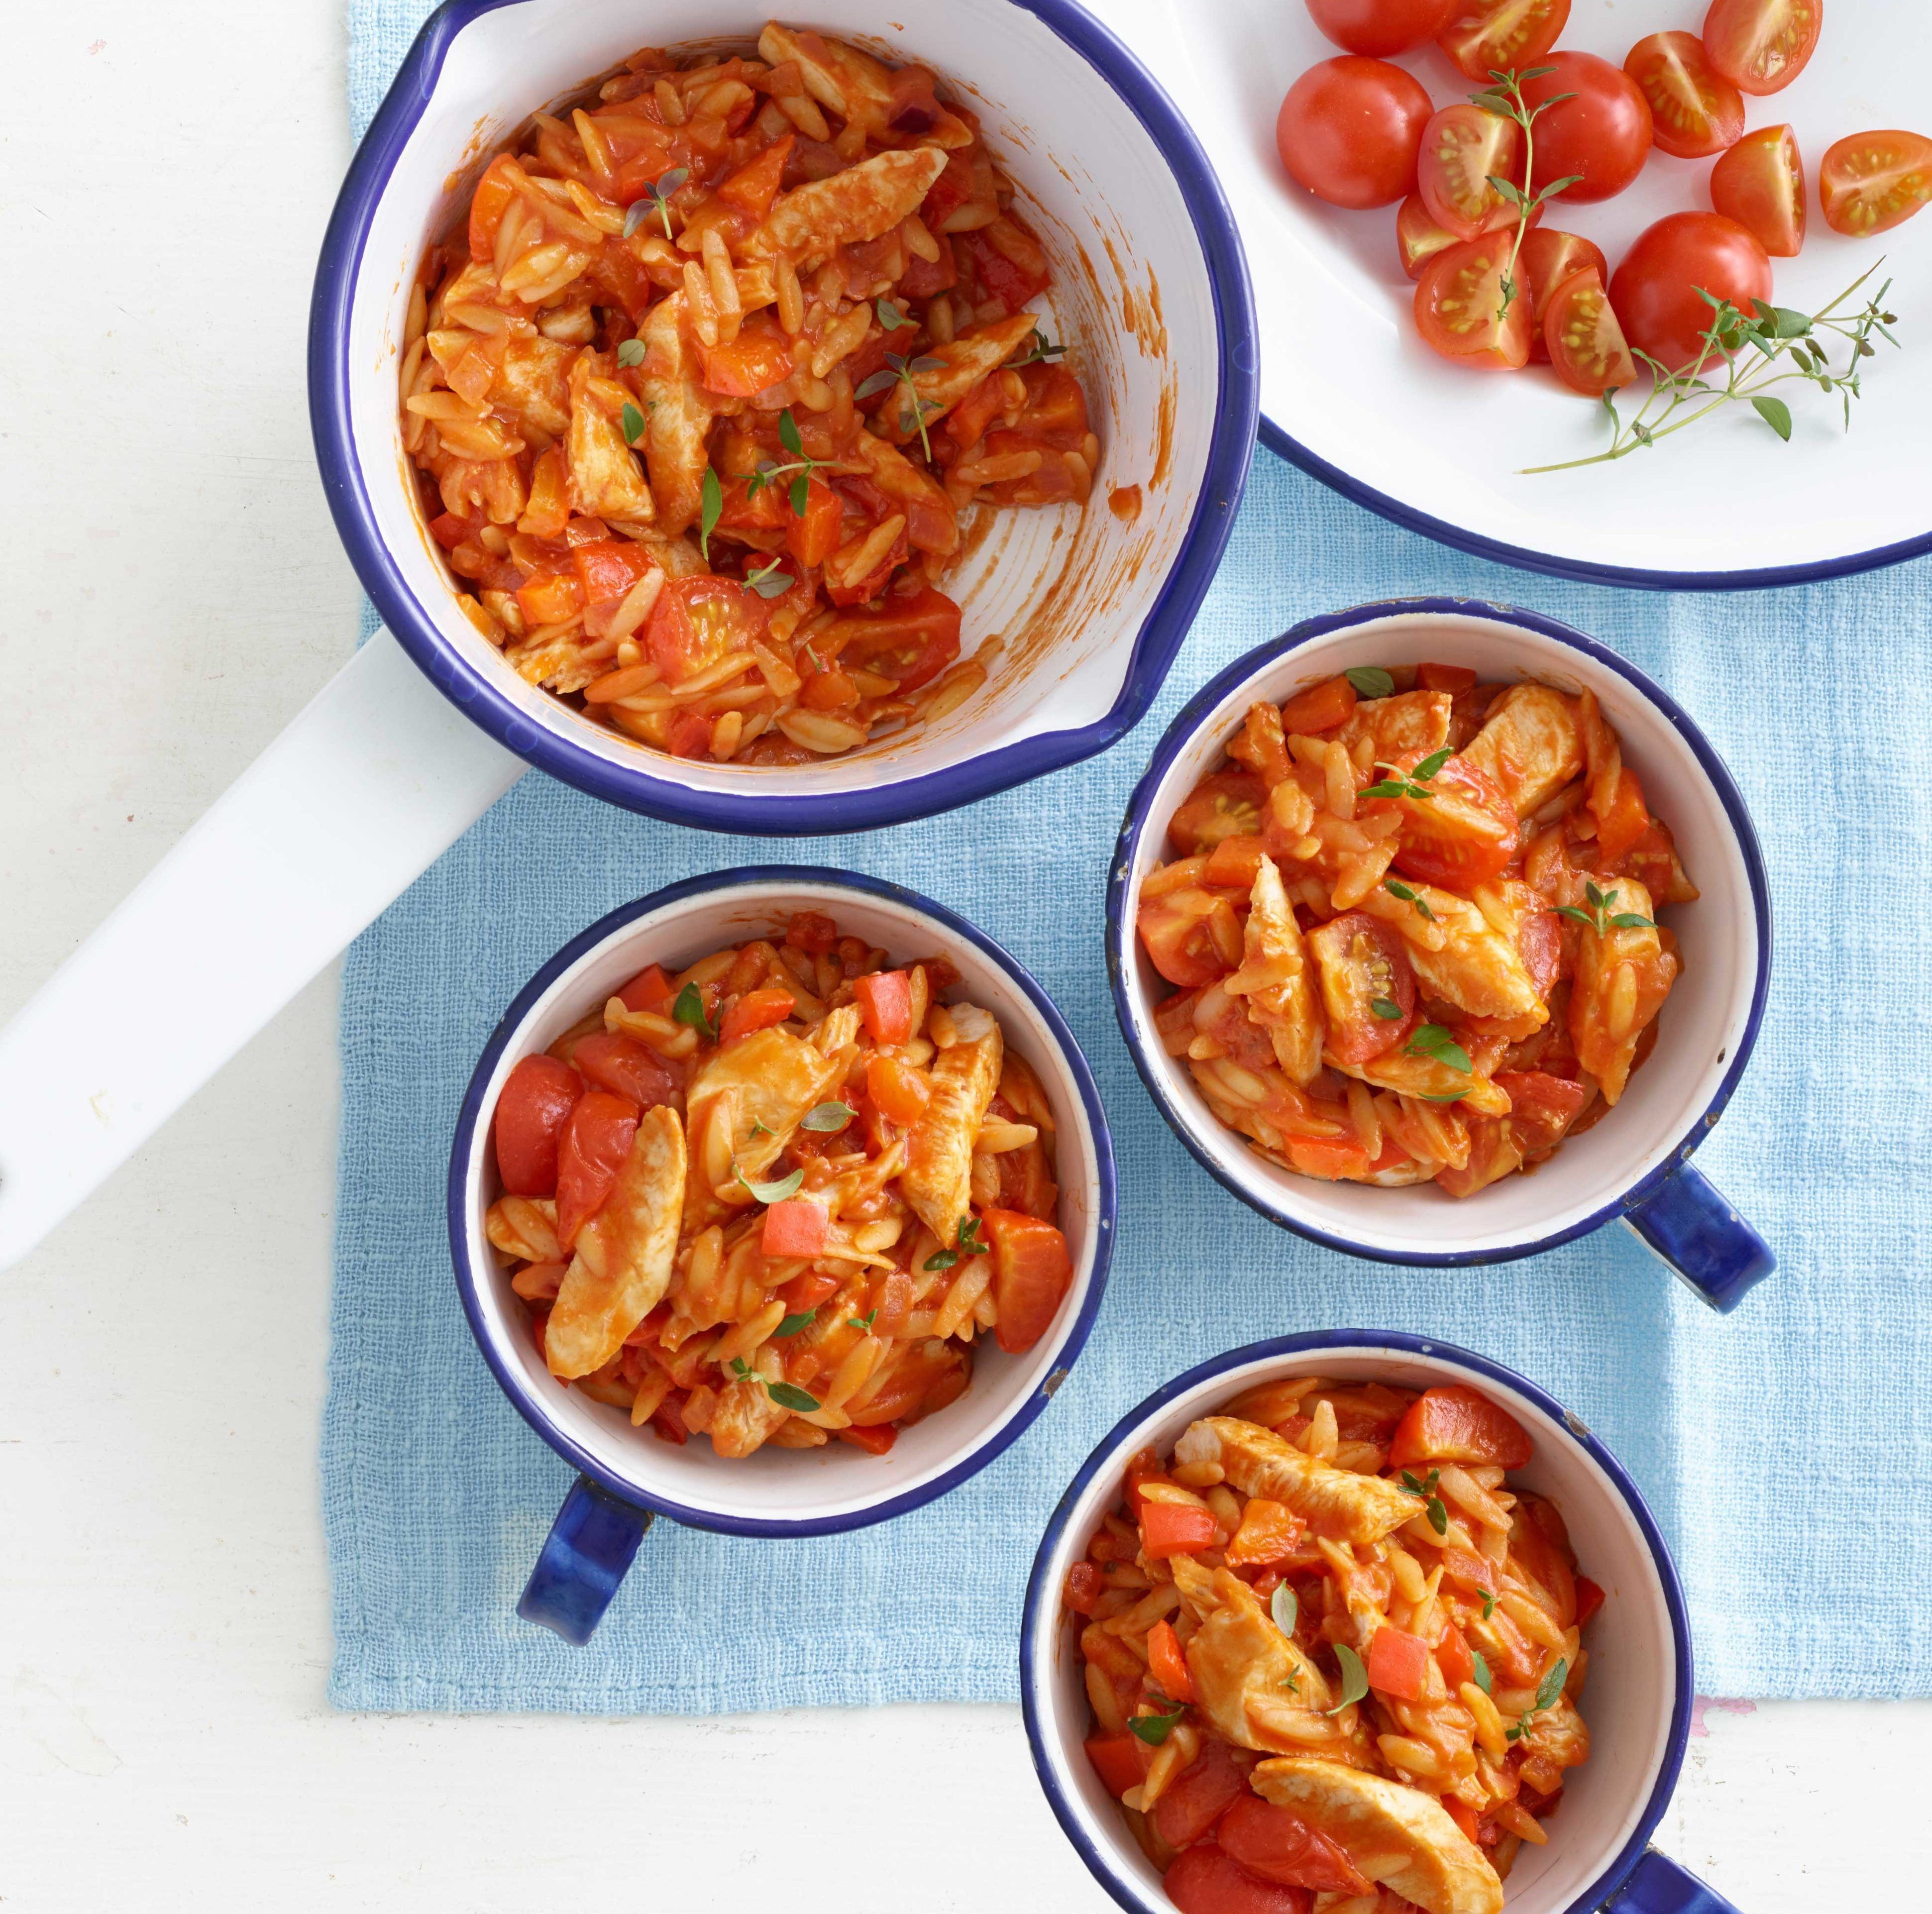 Chicken with tomatoes and orzo orzo baby led weaning and led weaning chicken with tomatoes and orzo baby recipestoddler forumfinder Image collections